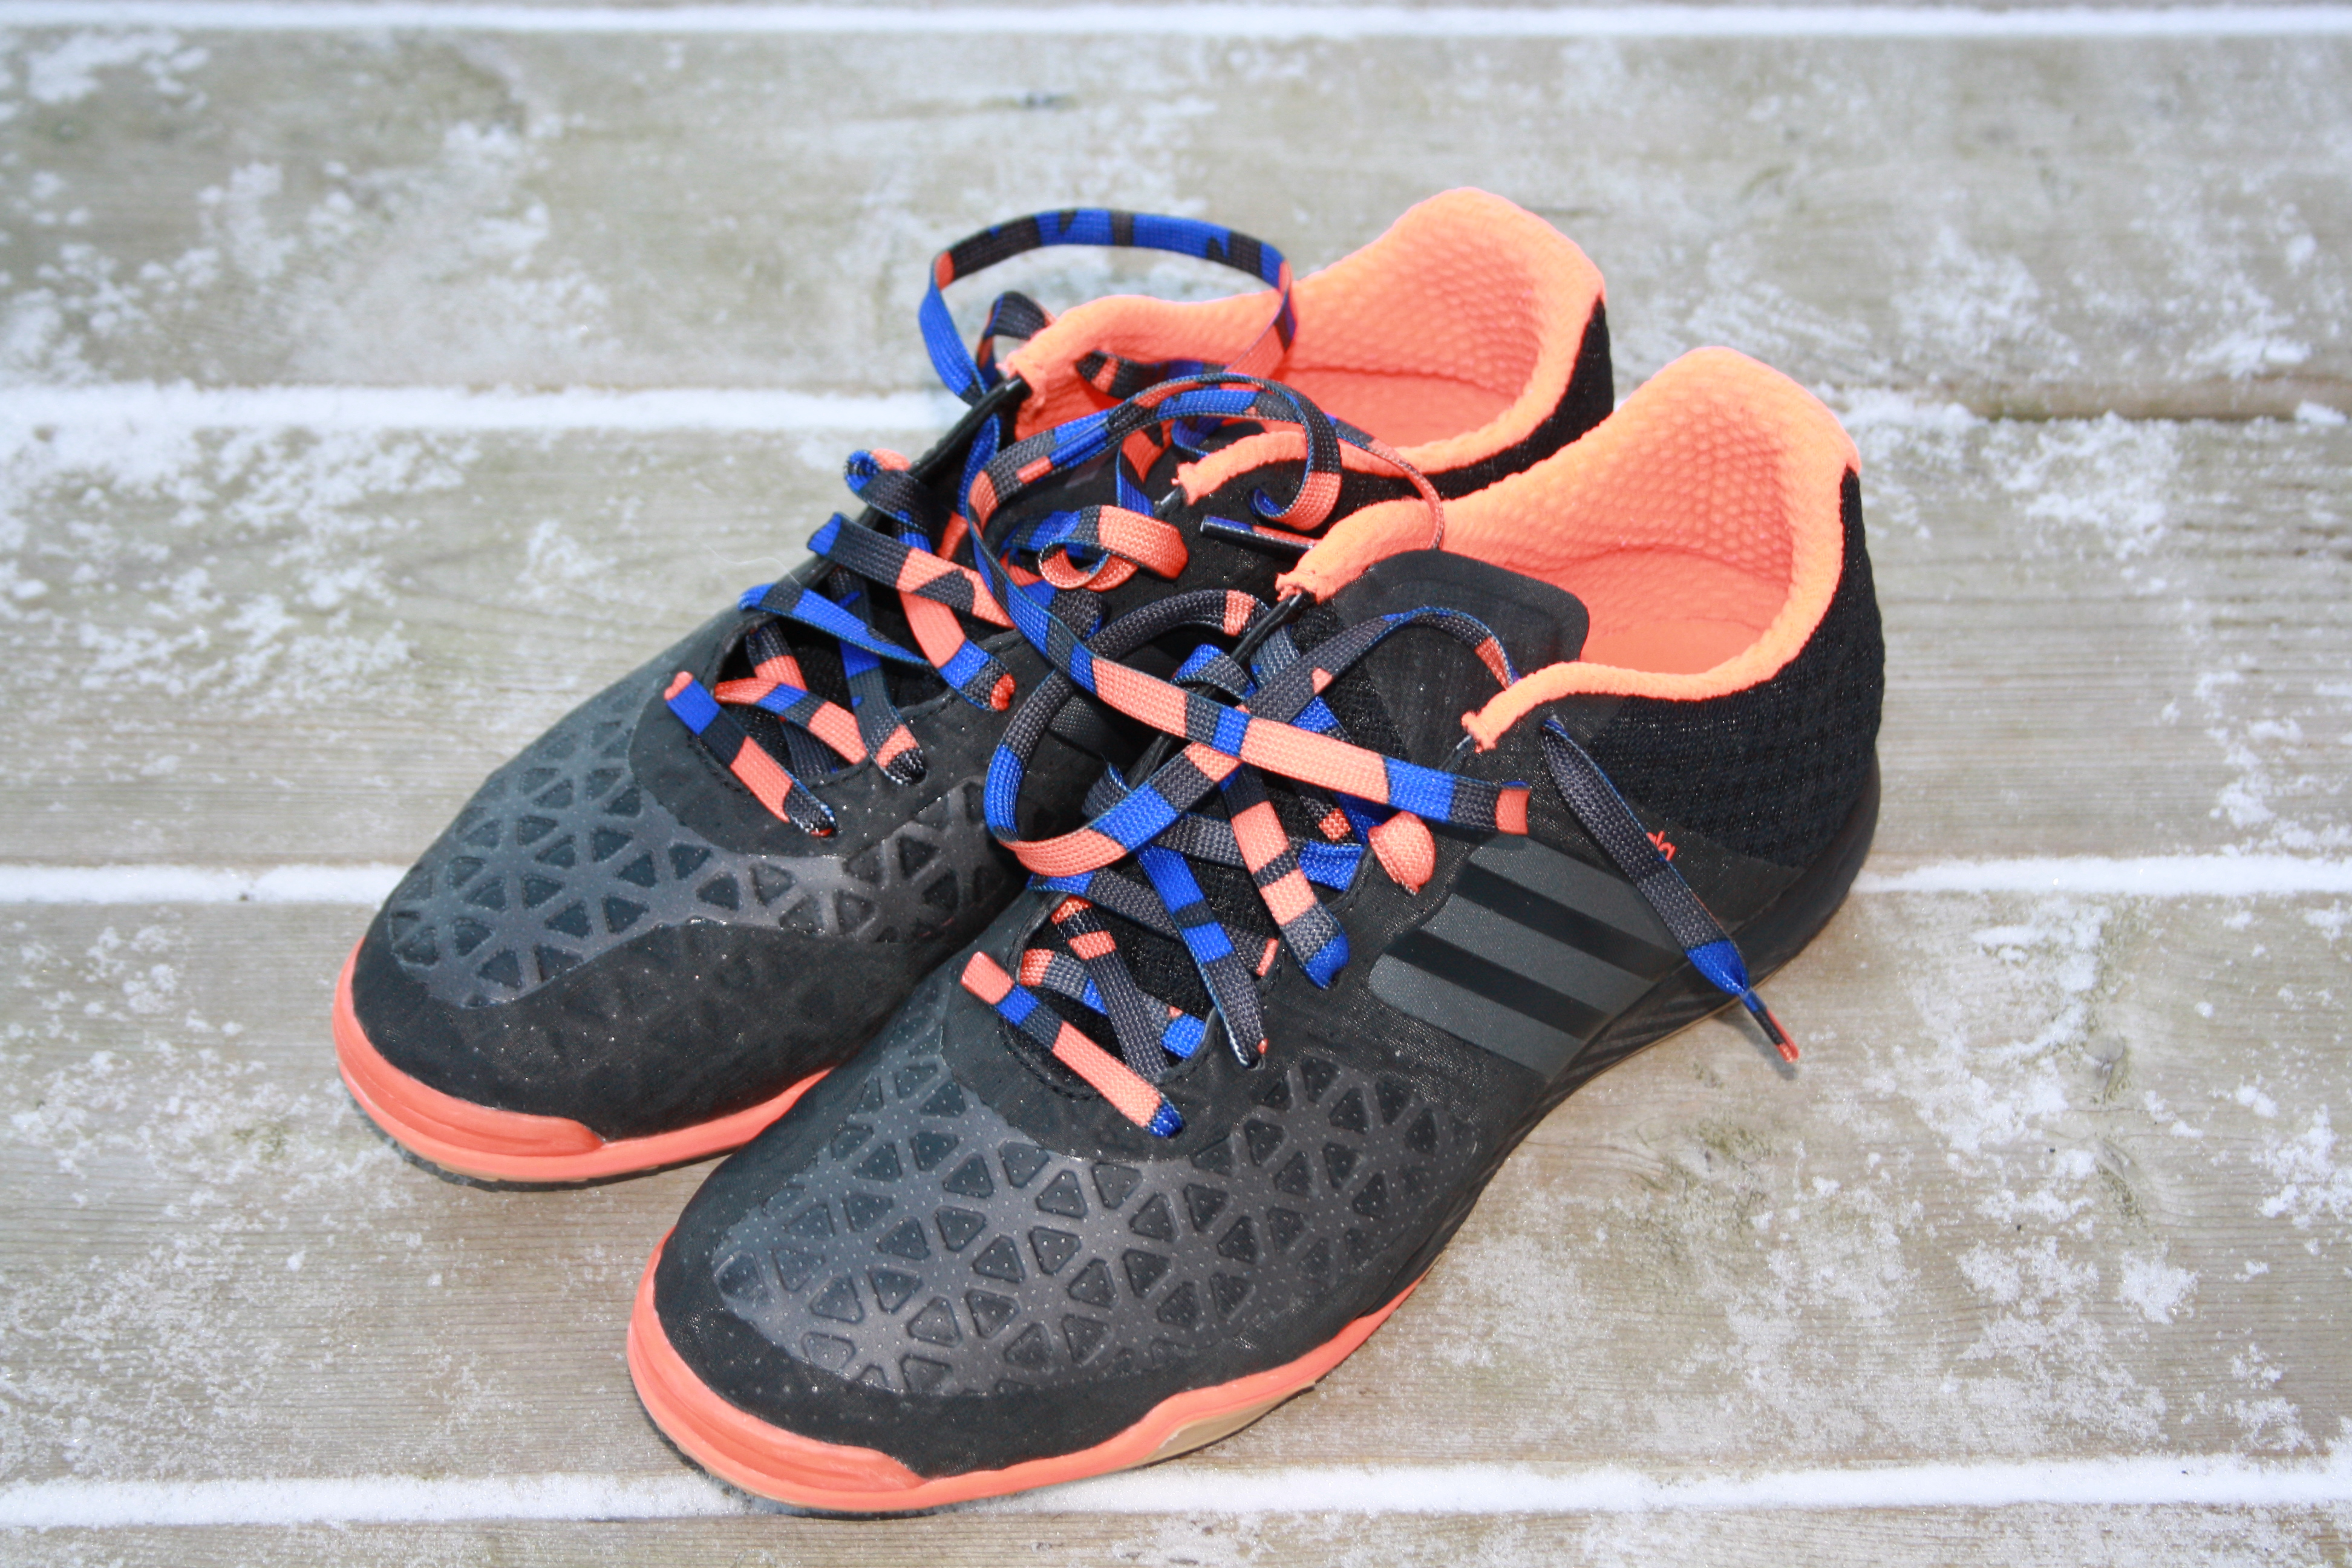 3b3ce302818 Adidas Ace 15.1 Top Sala - Indoor Shoe Review | Soccer Cleats 101